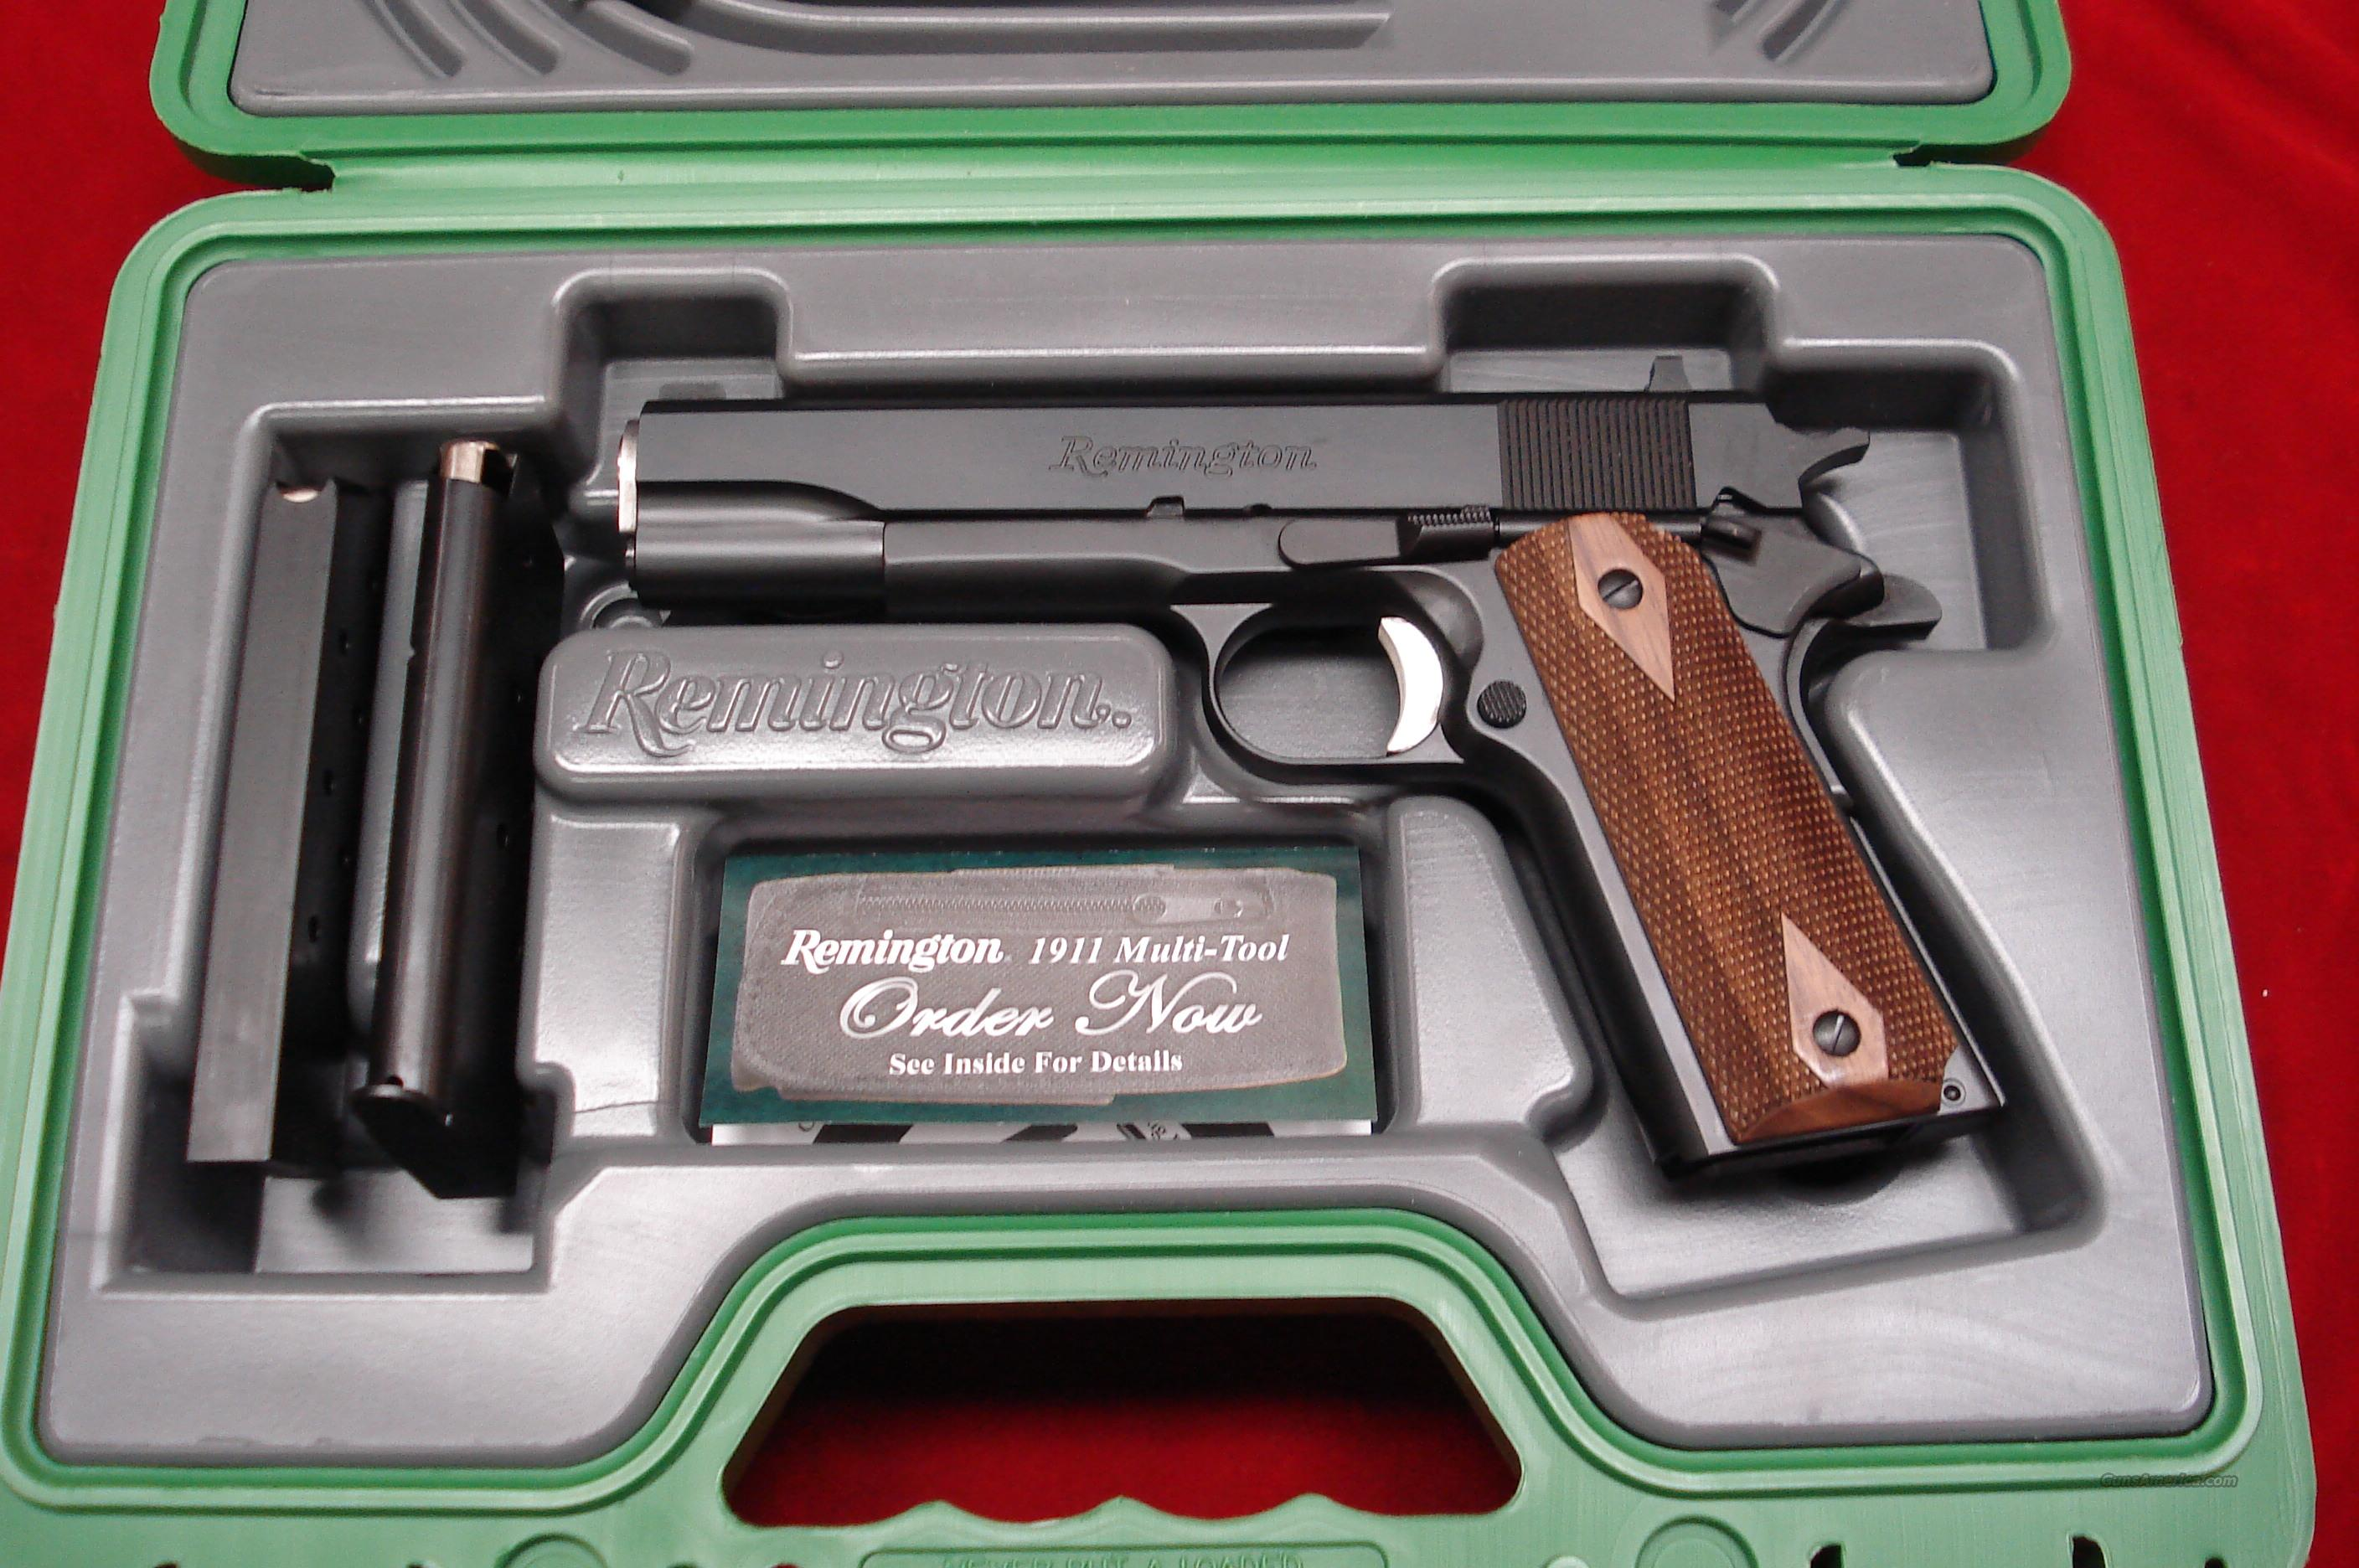 {{ SALE PRICE }} REMINGTON  1911 R1 45ACP NEW {{ IN STOCK READY TO SHIP }}  Guns > Pistols > Remington Pistols - Modern